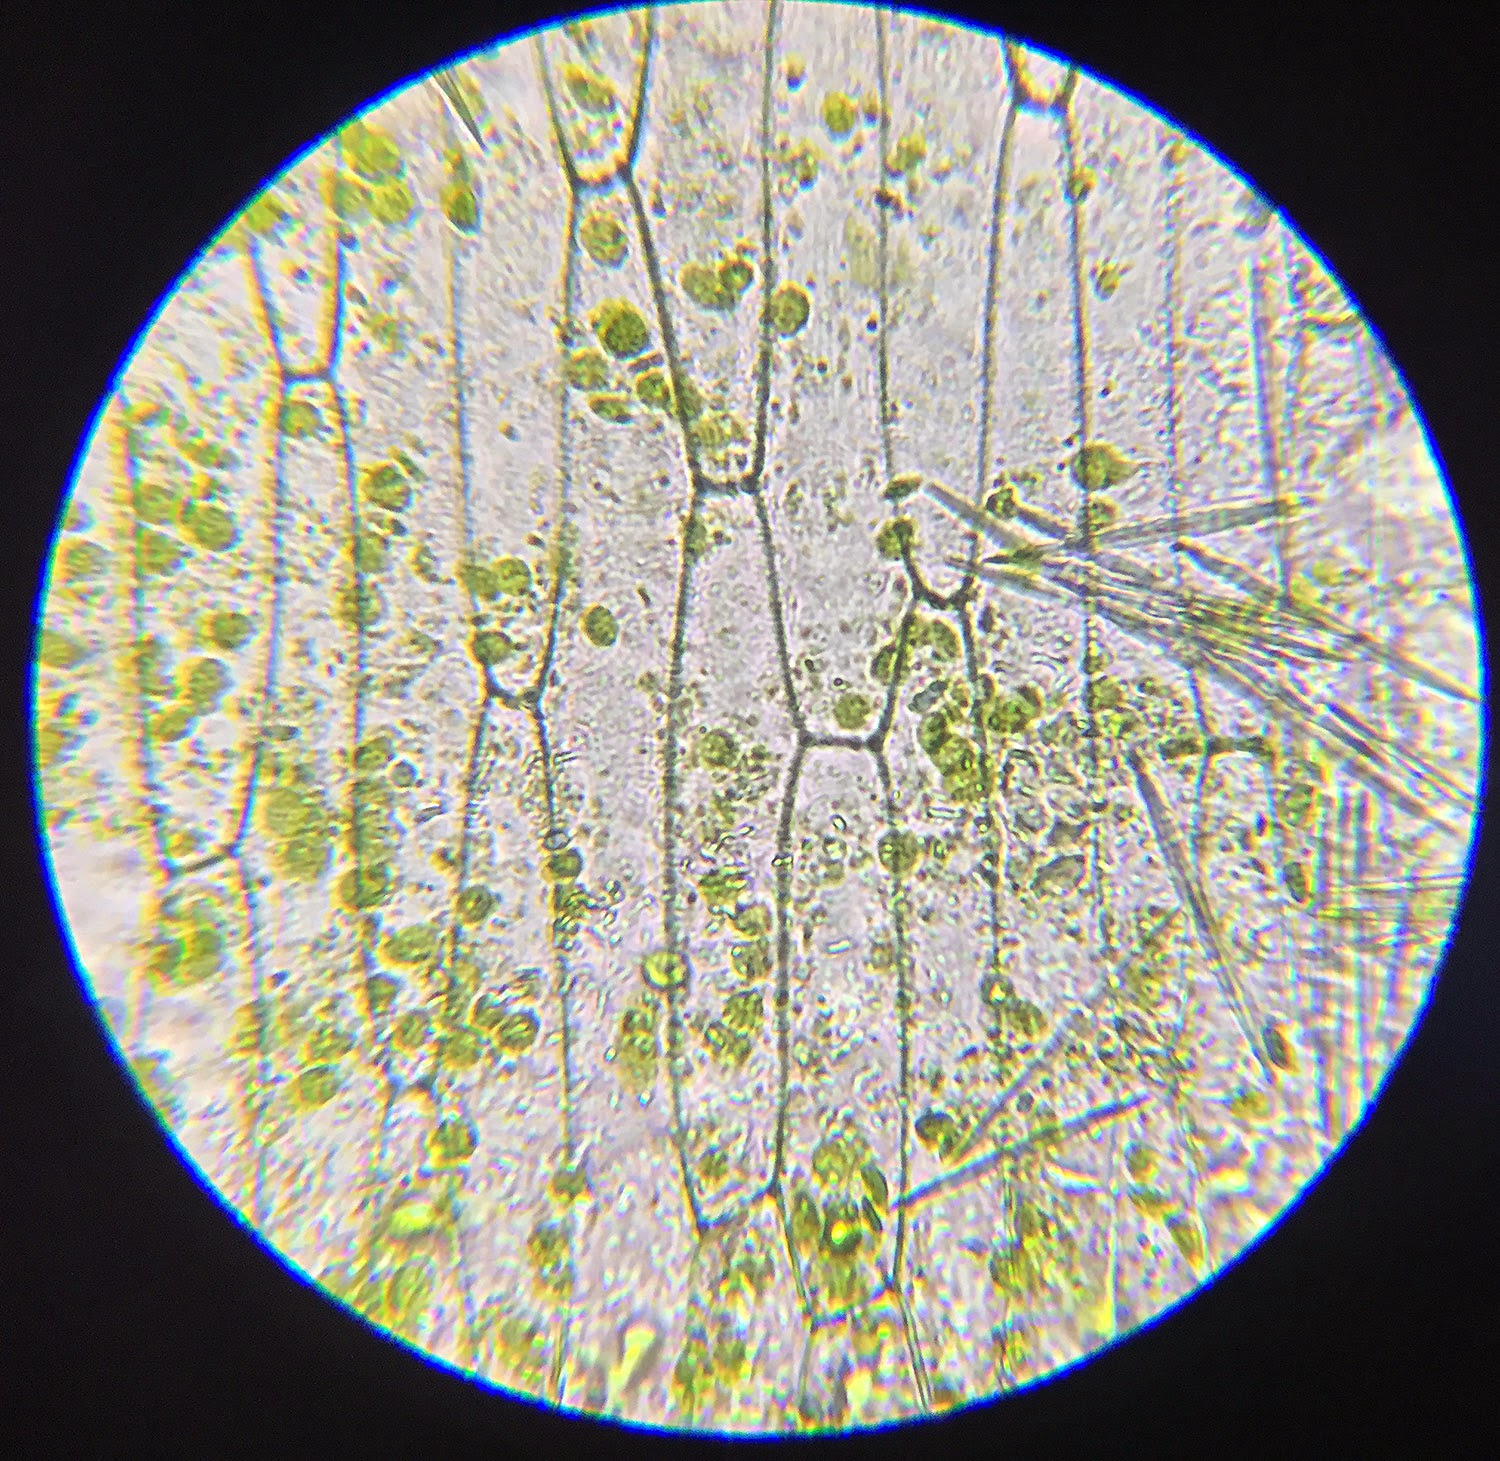 A school of fish: Plant and Animal Cells through the ...